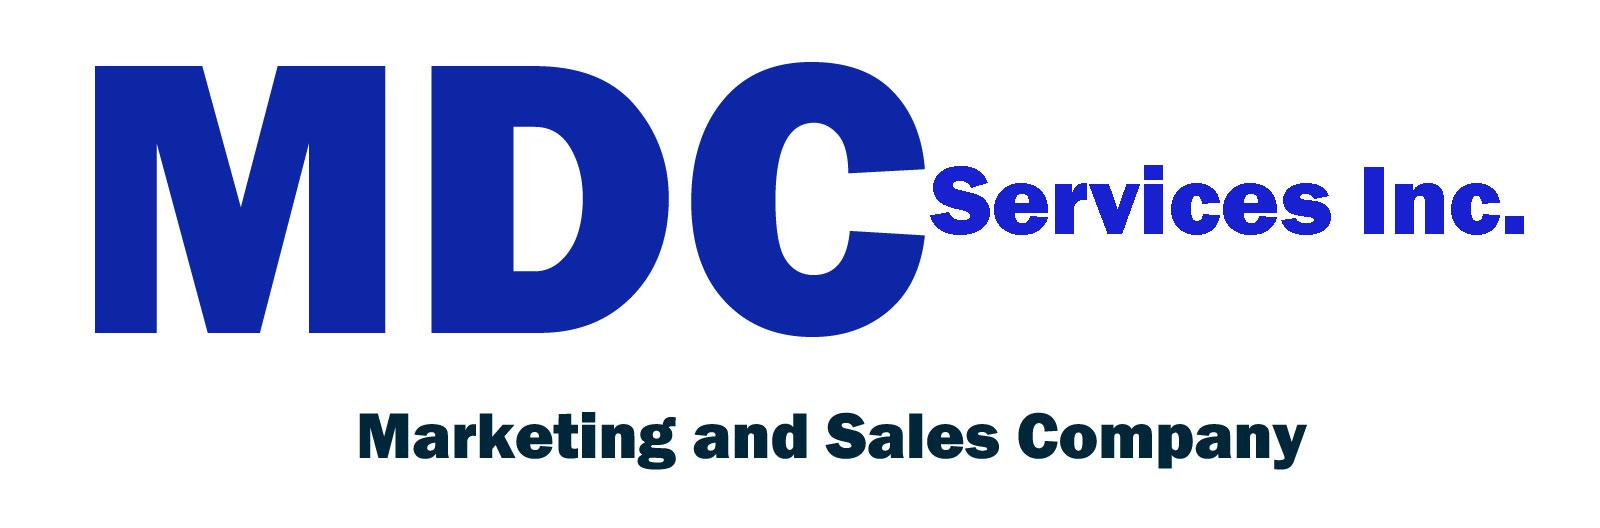 MDC Services Inc